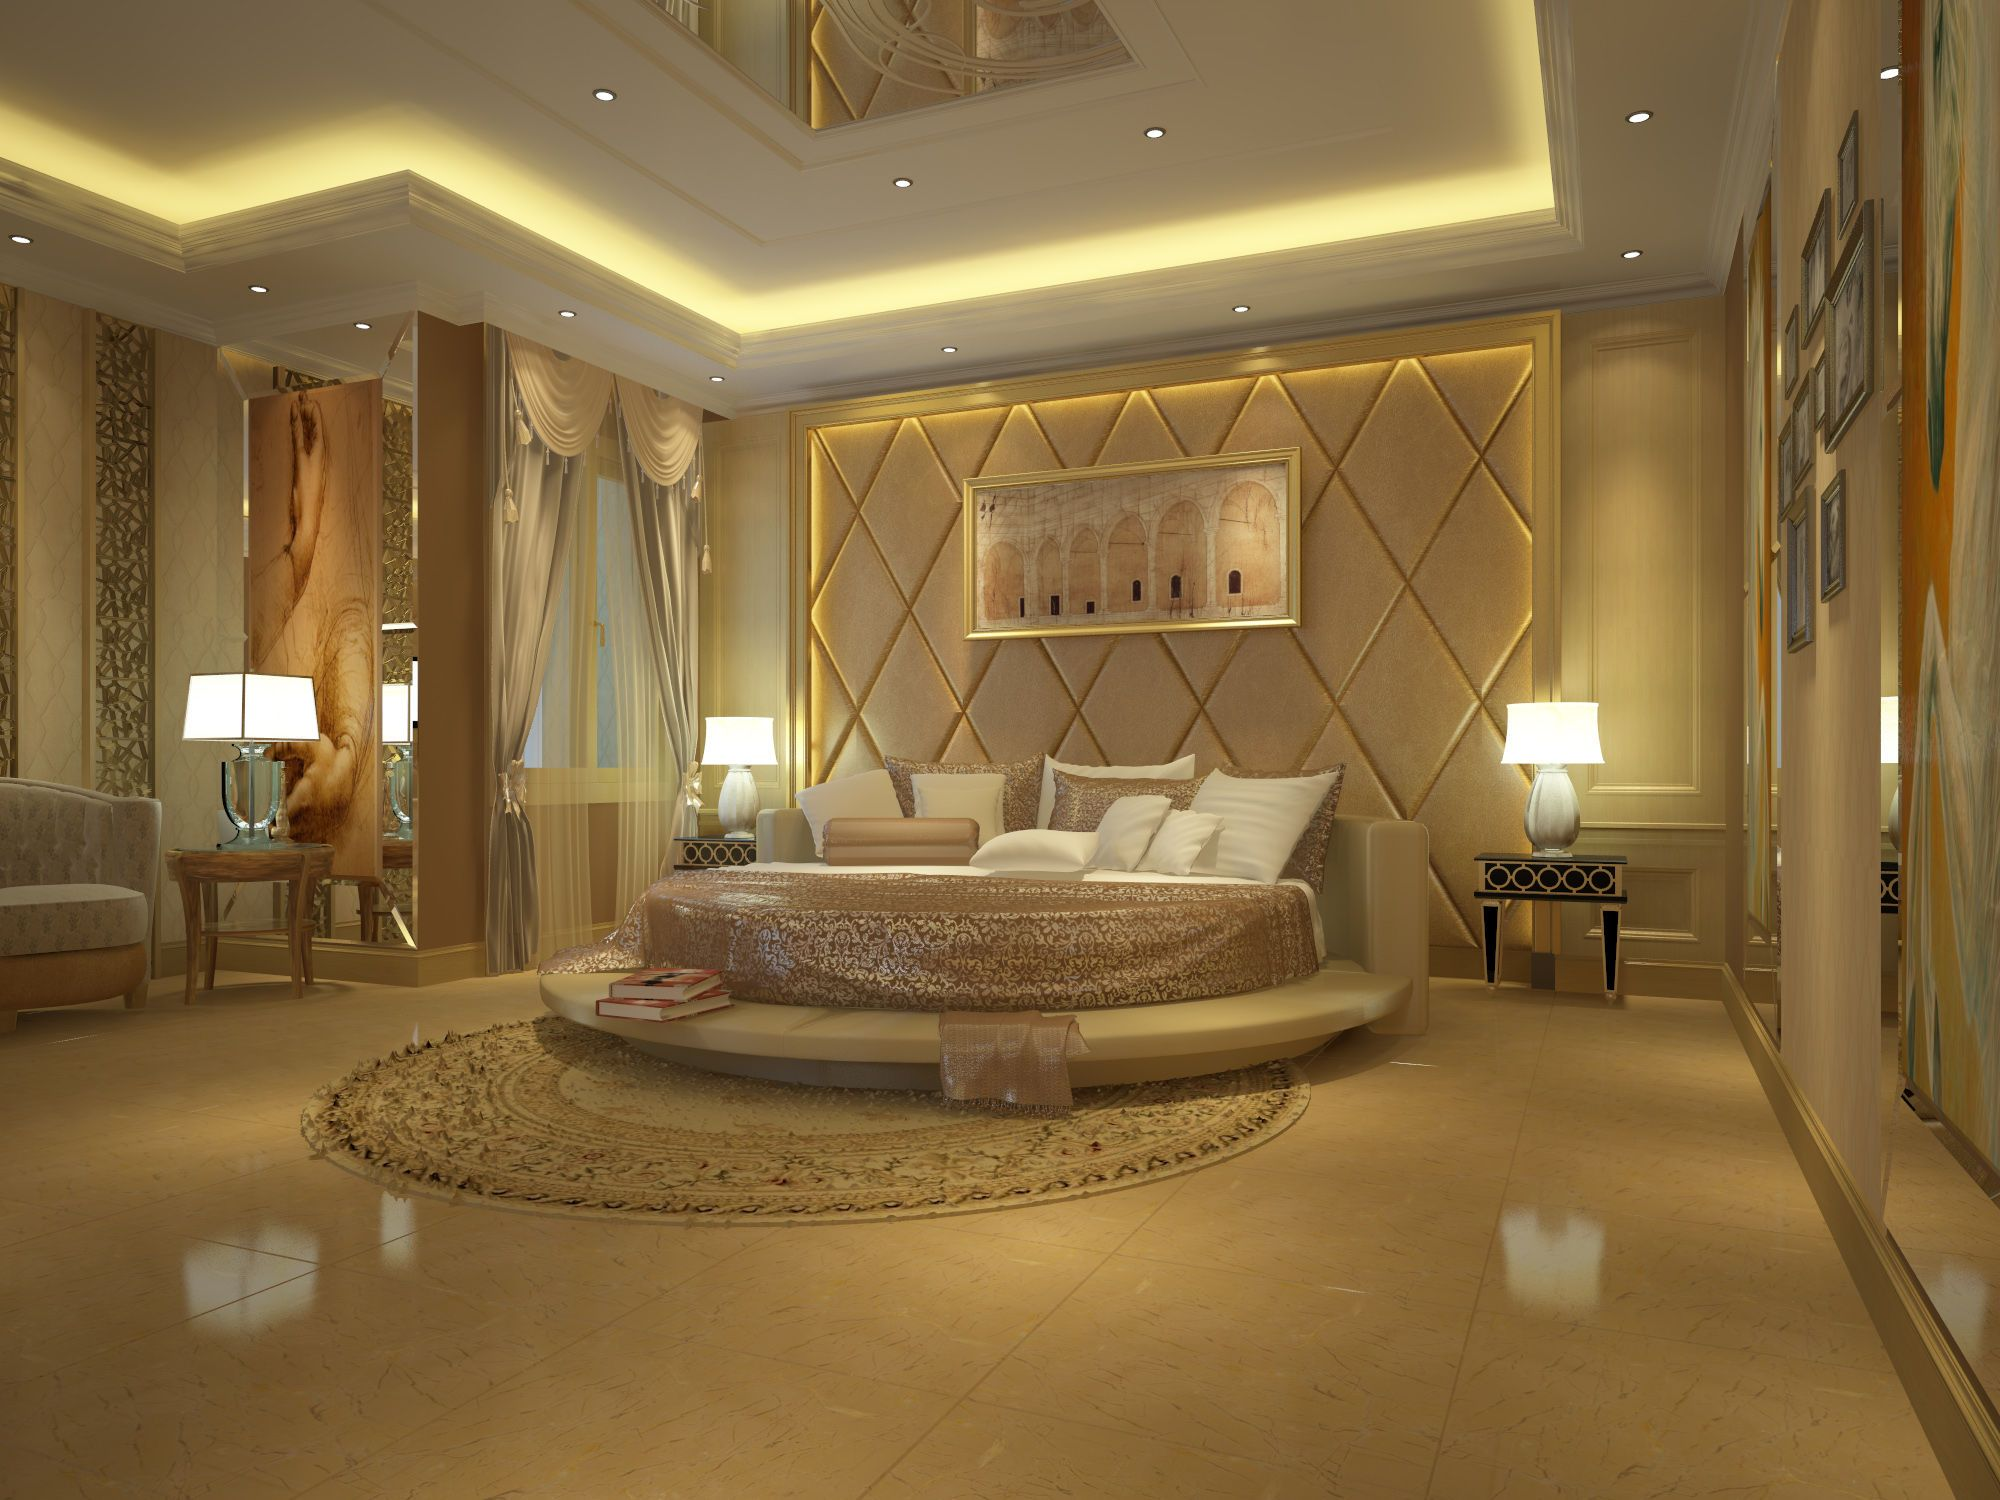 Luxury Master Bedroom Design With A White Marble Floor Marble